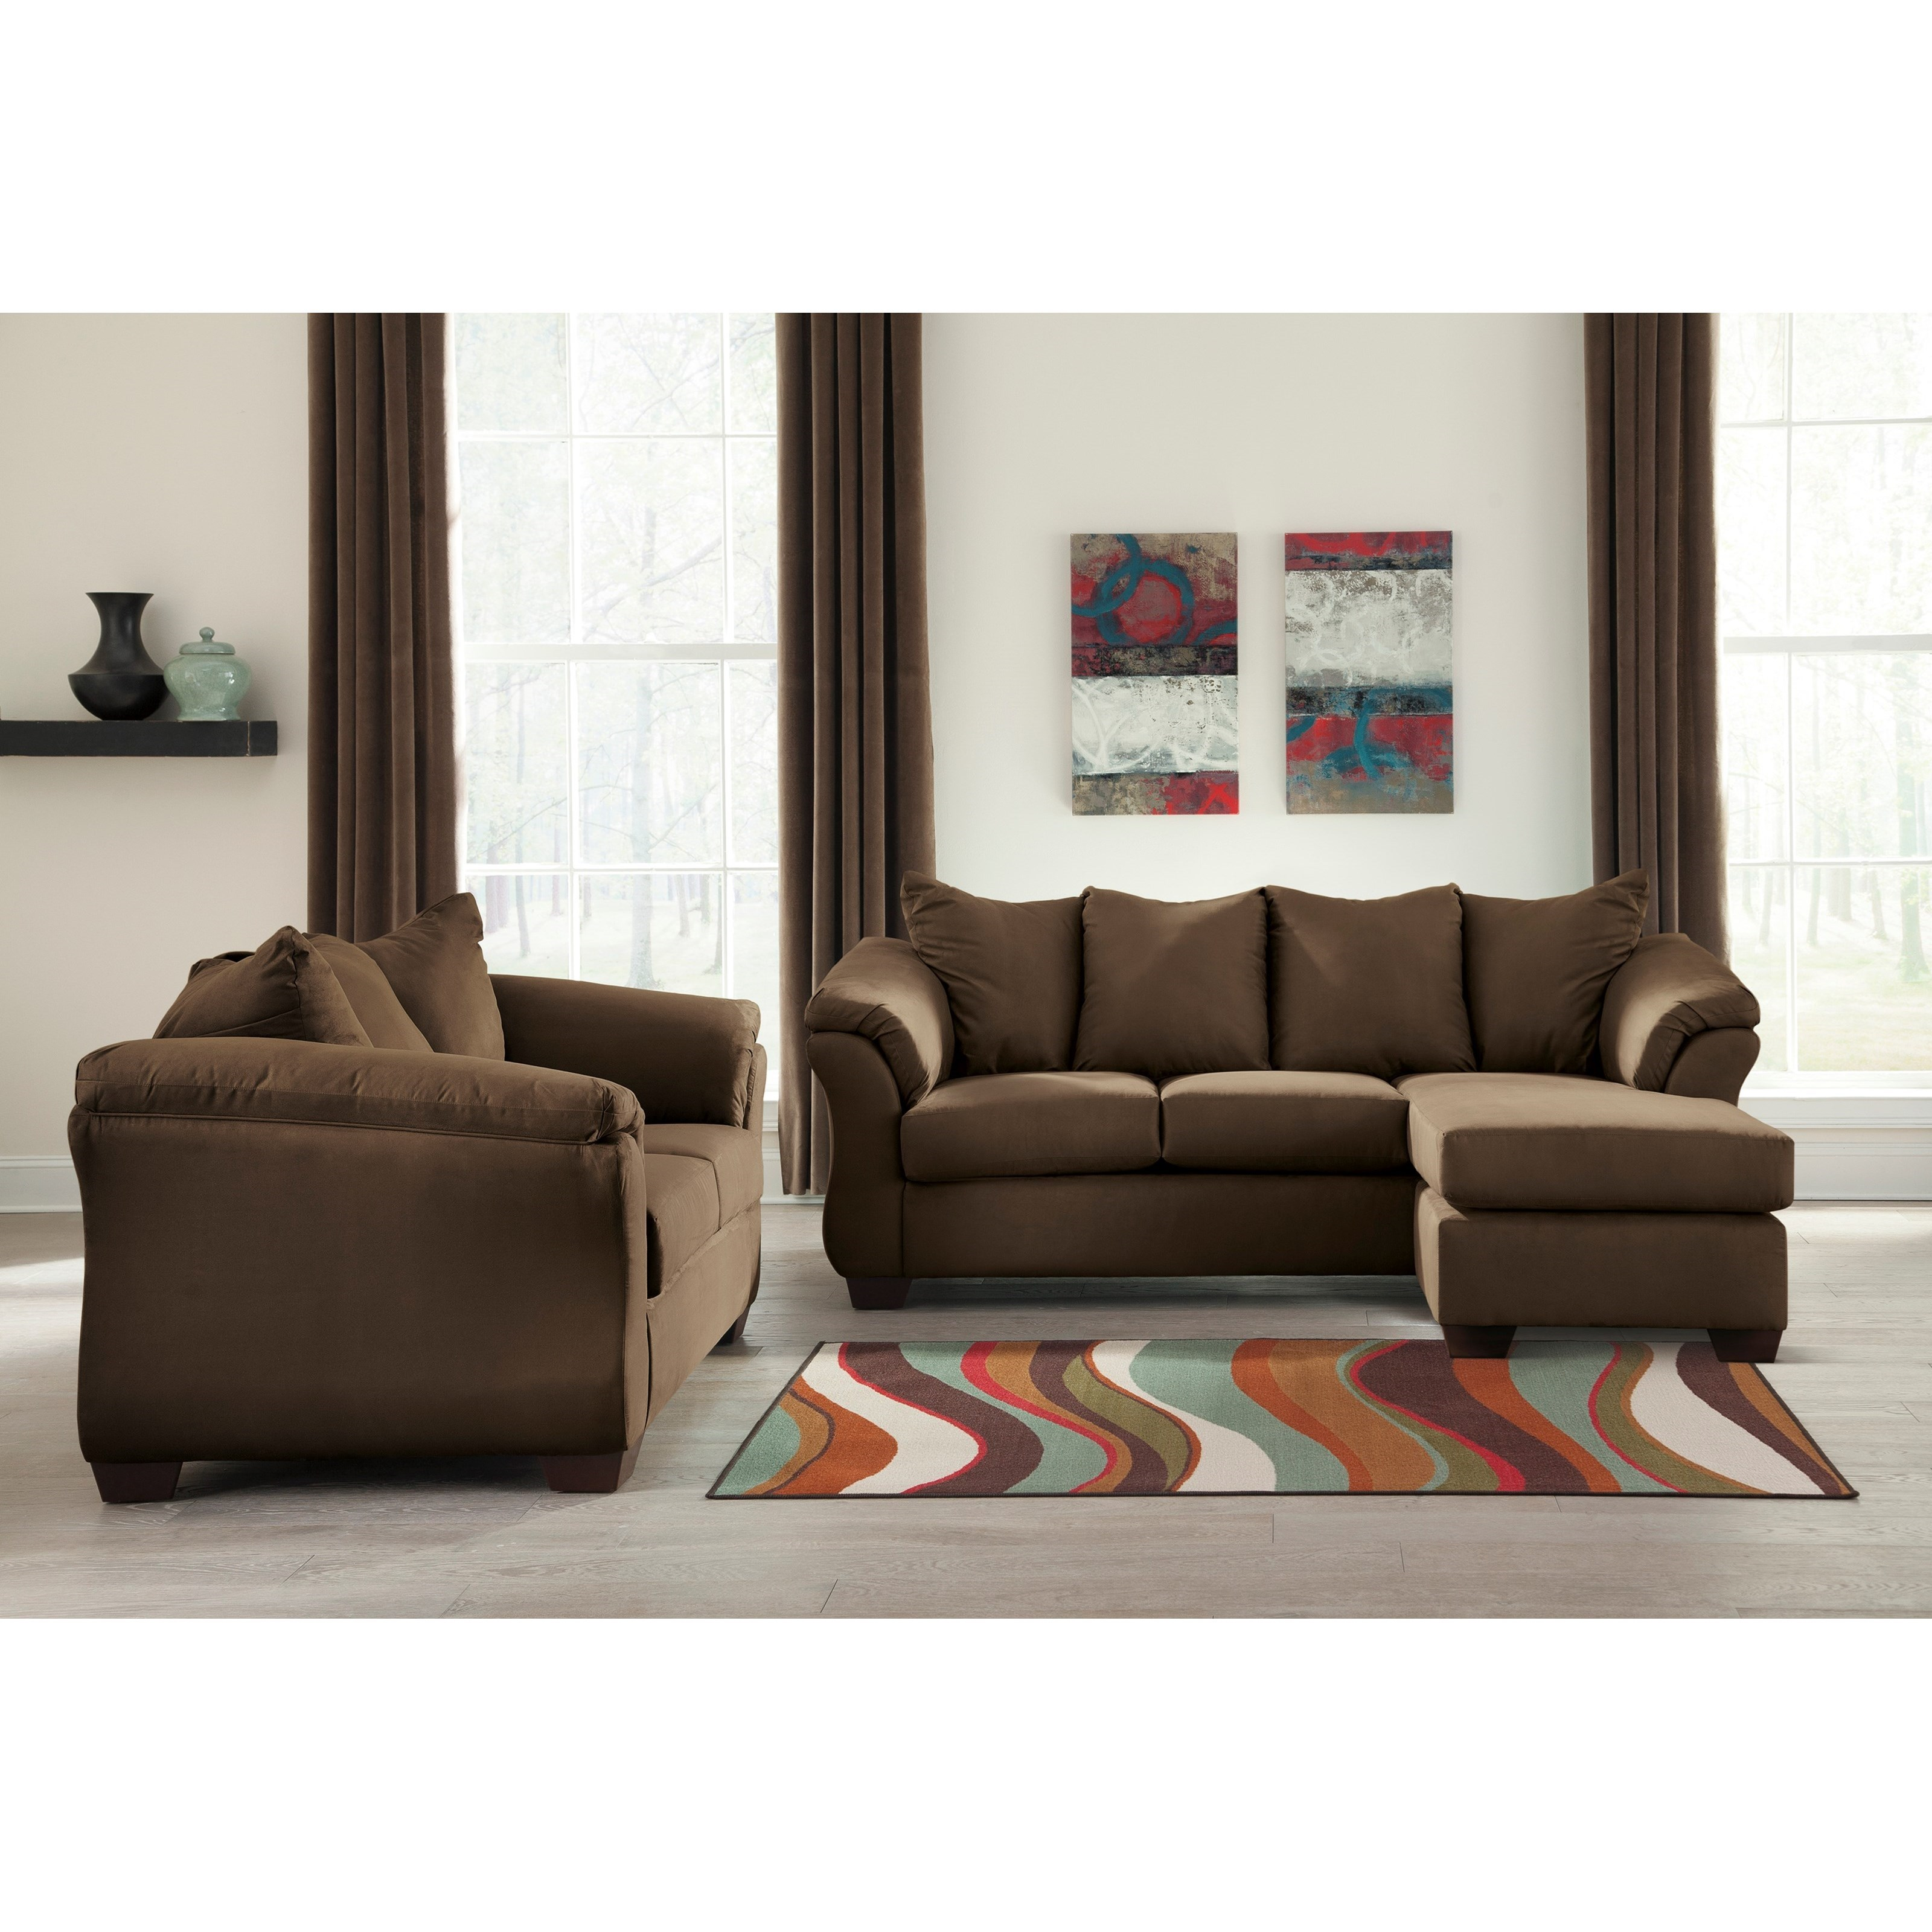 Signature design by ashley darcy cafe stationary living for Living room furniture groups